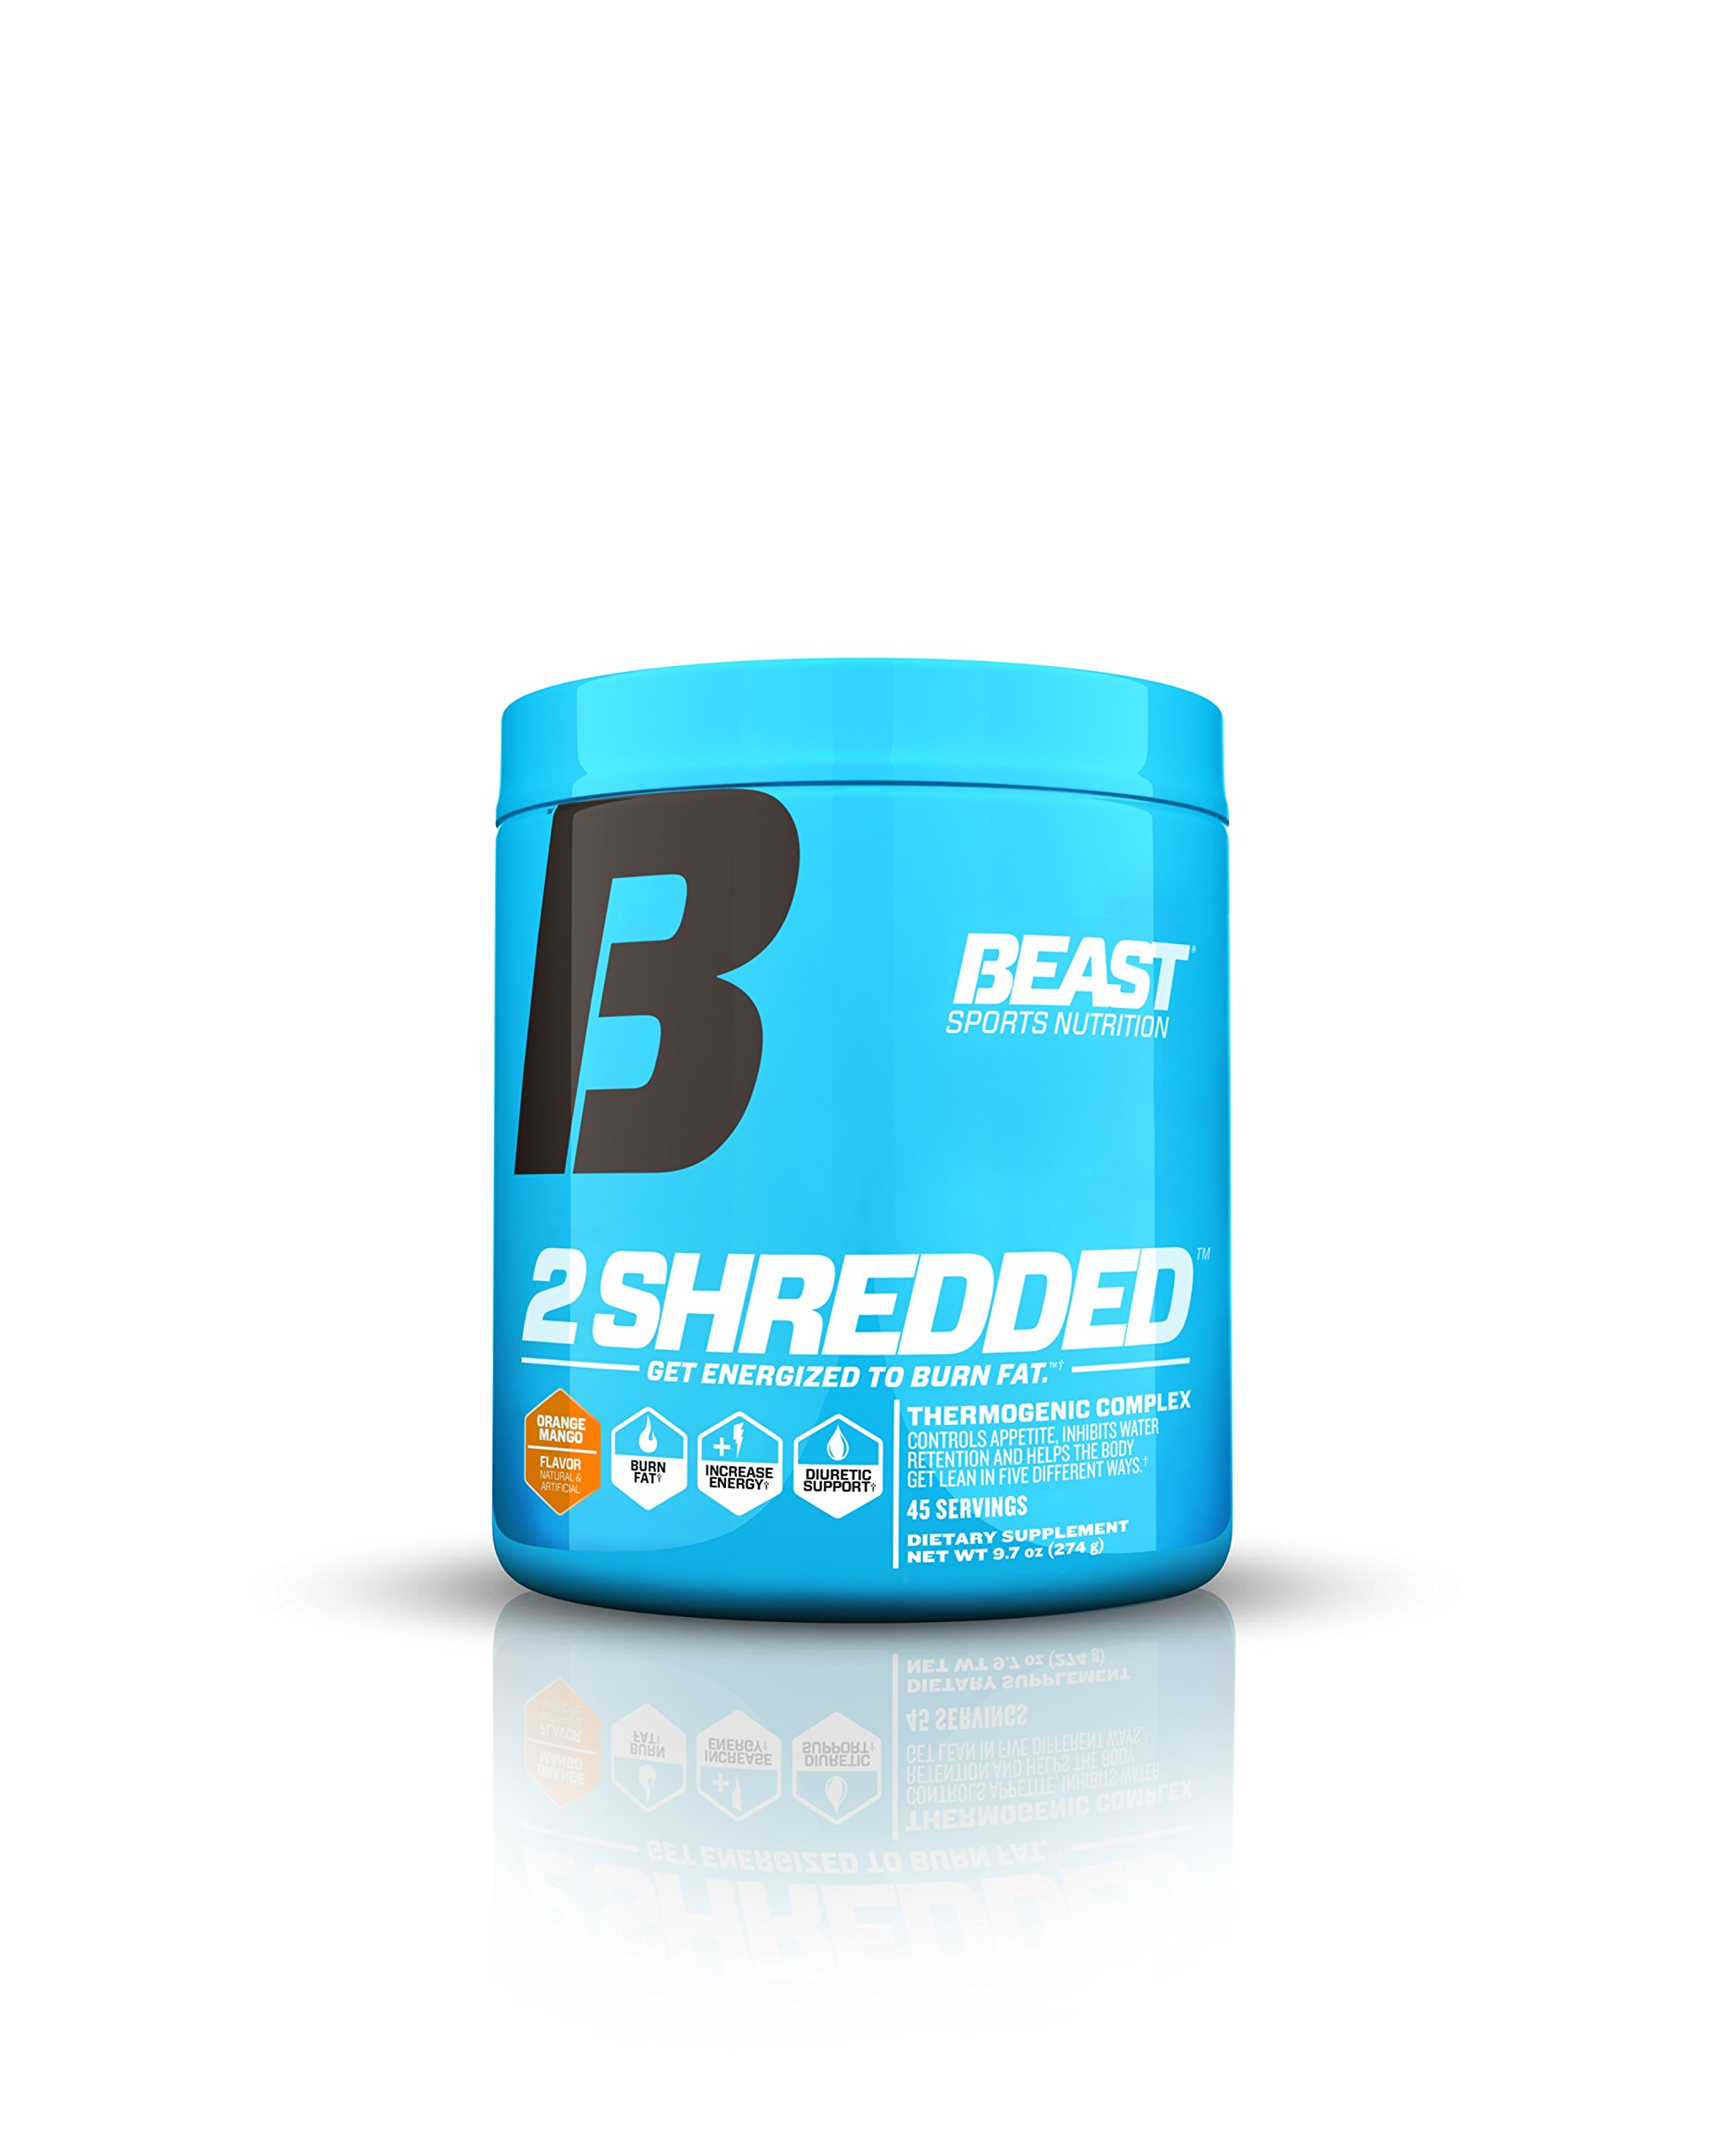 Beast Sports Nutrition 2 Shredded: Thermogenic Powder, Metabolism Booster, and Appetite Suppressant | Best Fat Burner Drink for Weight Loss and Reduced Water Retention, Orange Mango, 45 Servings